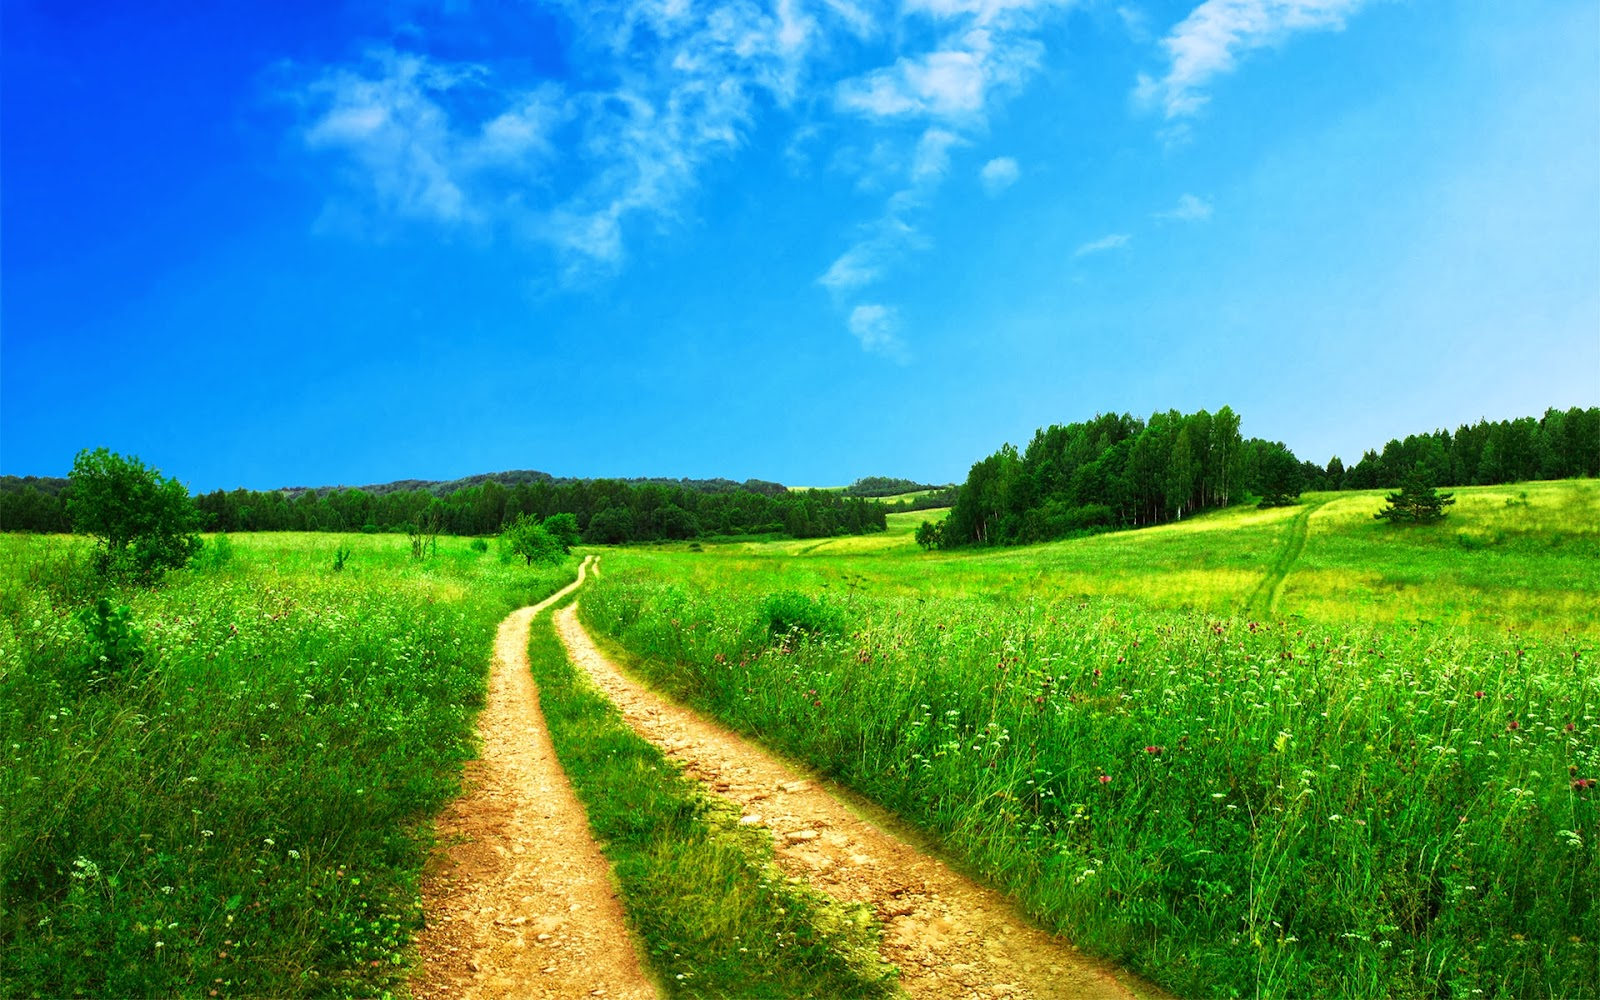 Path Walkway in Green Grass Nature Full HD Desktop Backgrounds Images Wallpapers Free